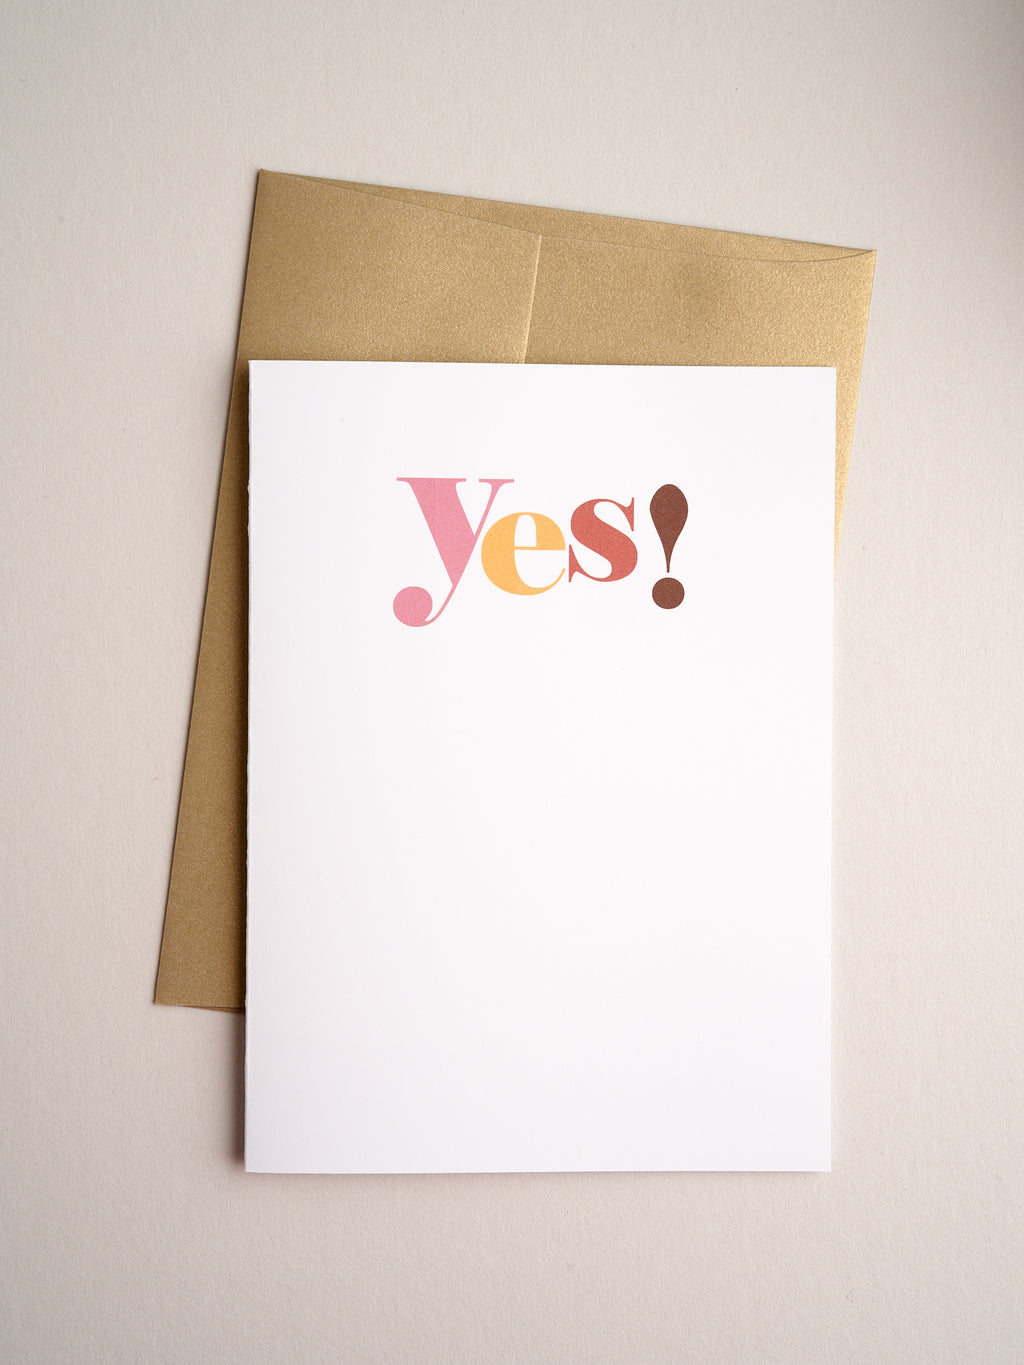 FR-20-06 | Yes! - Greeting Cards - Queen & Grace